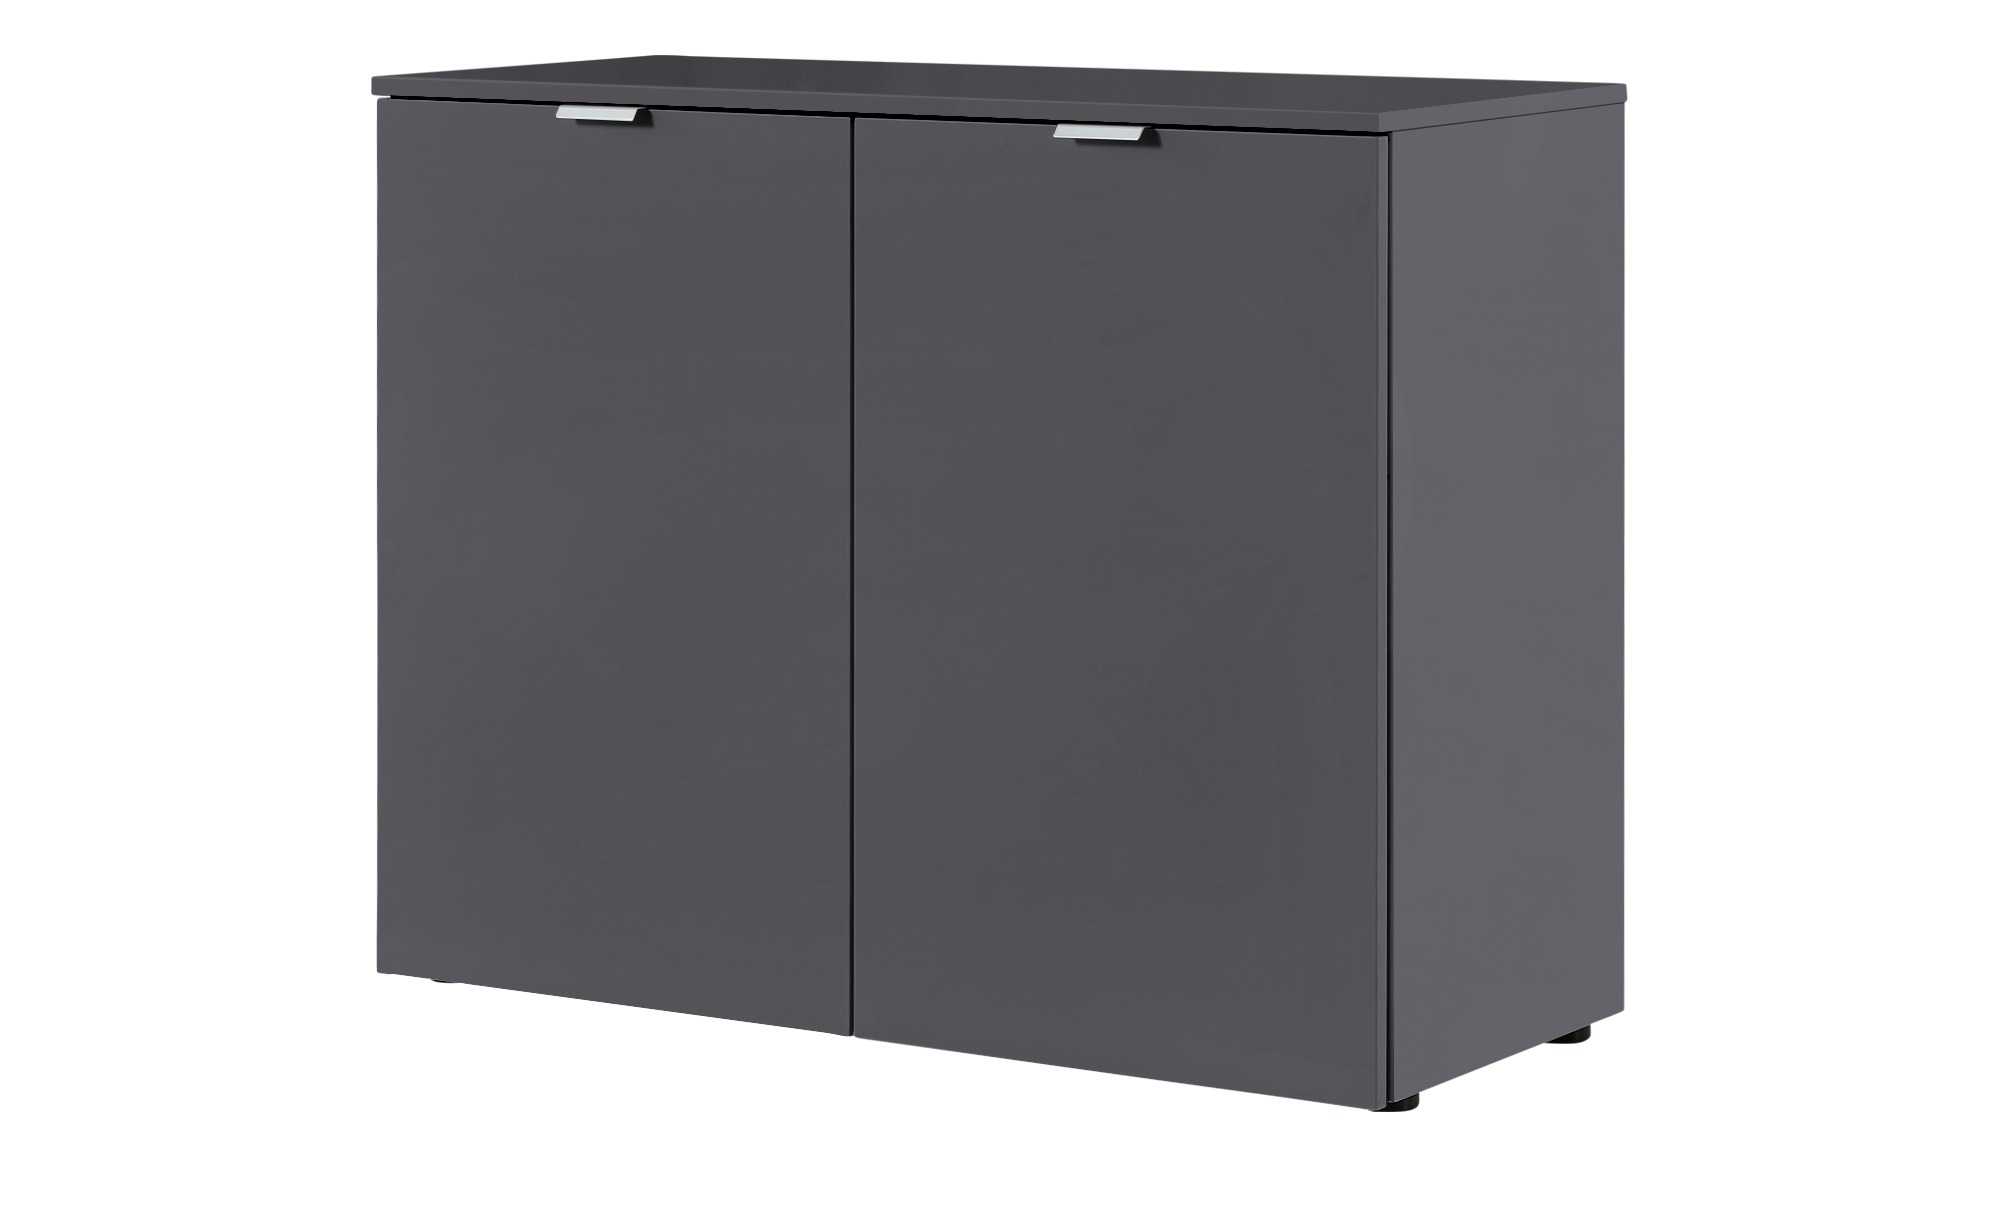 kommode dreamer breite 100 cm h he 80 cm grau online kaufen bei woonio. Black Bedroom Furniture Sets. Home Design Ideas